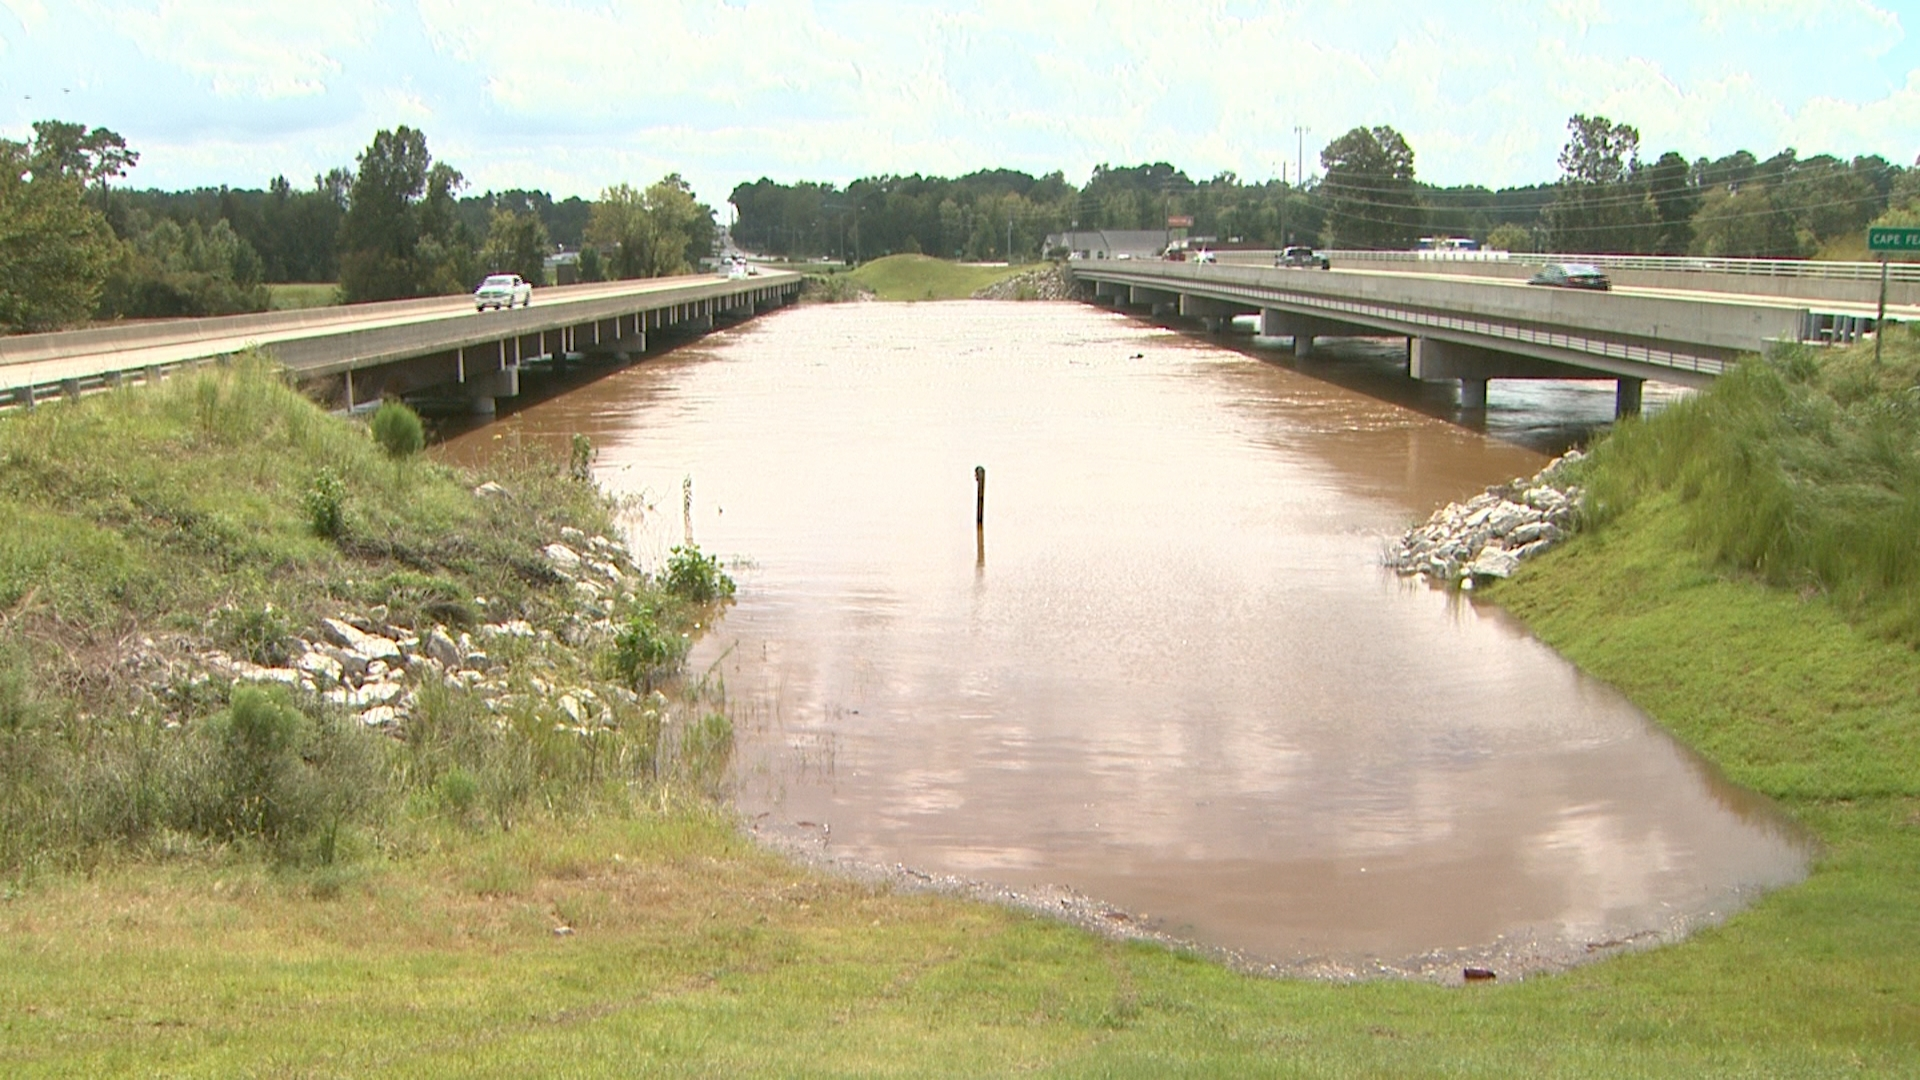 Hurricane Florence Flooding: Cape Fear River, Lil